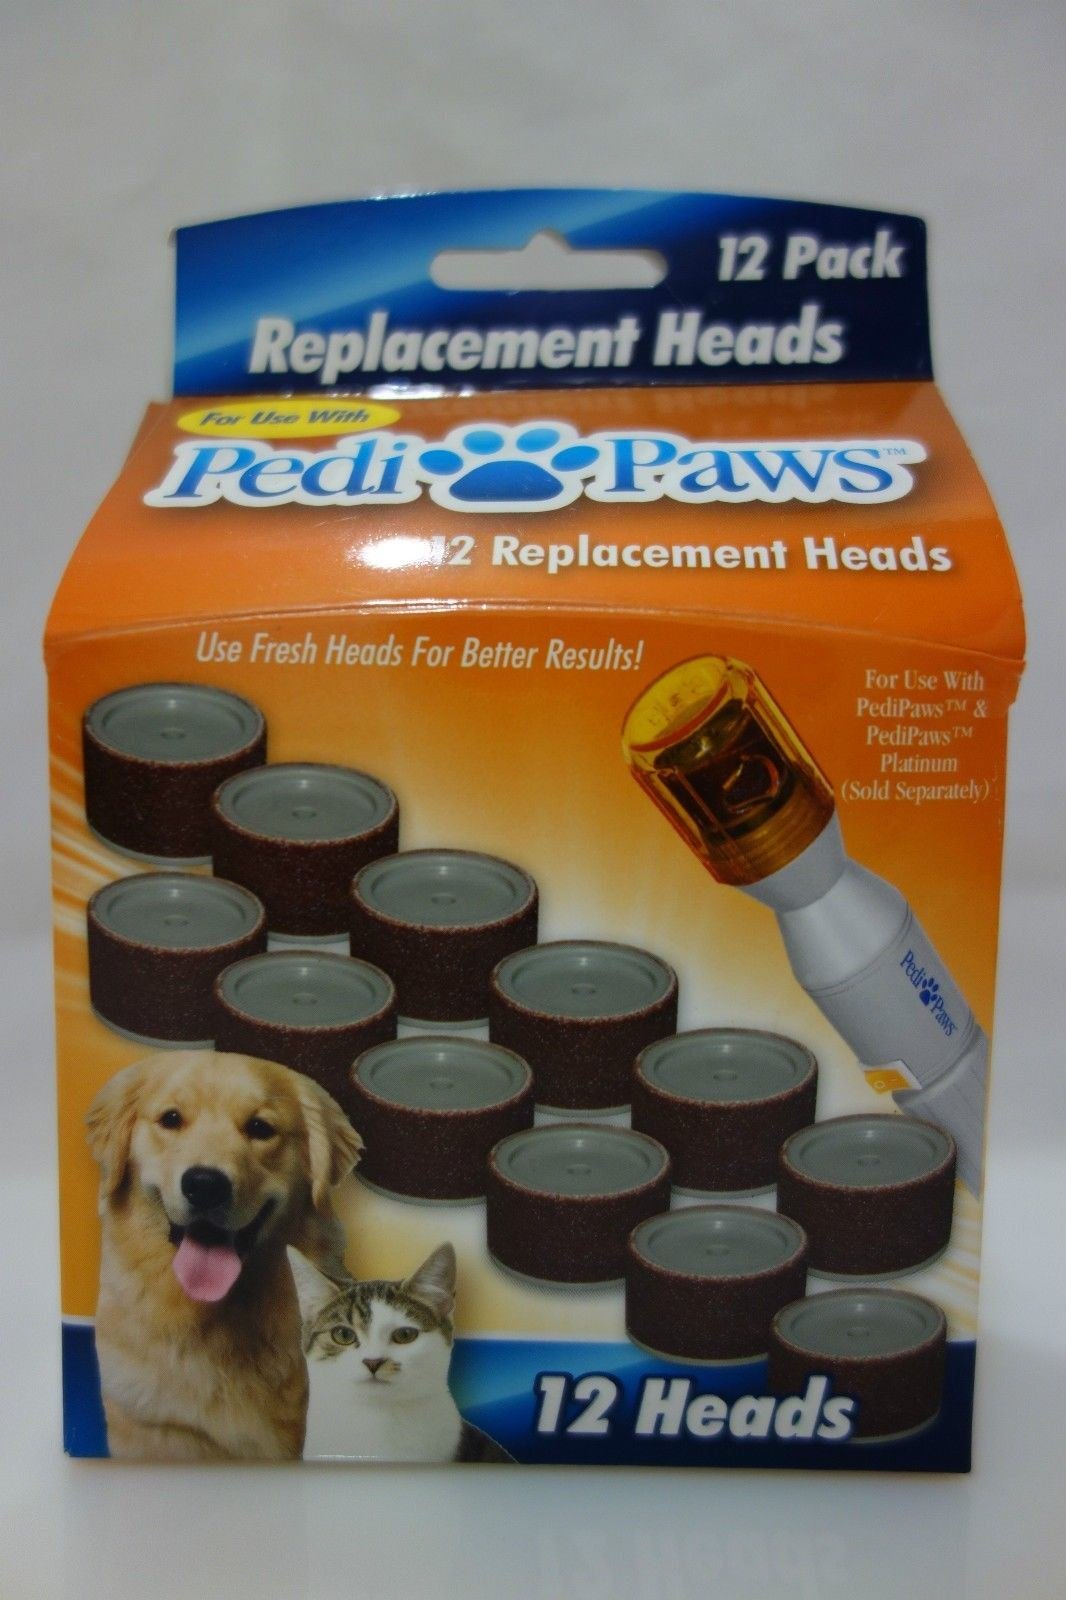 New Hot Pedi Paws Nail File Trimmer Replacement Heads Pedipaws 12 pack As Seen TV refill